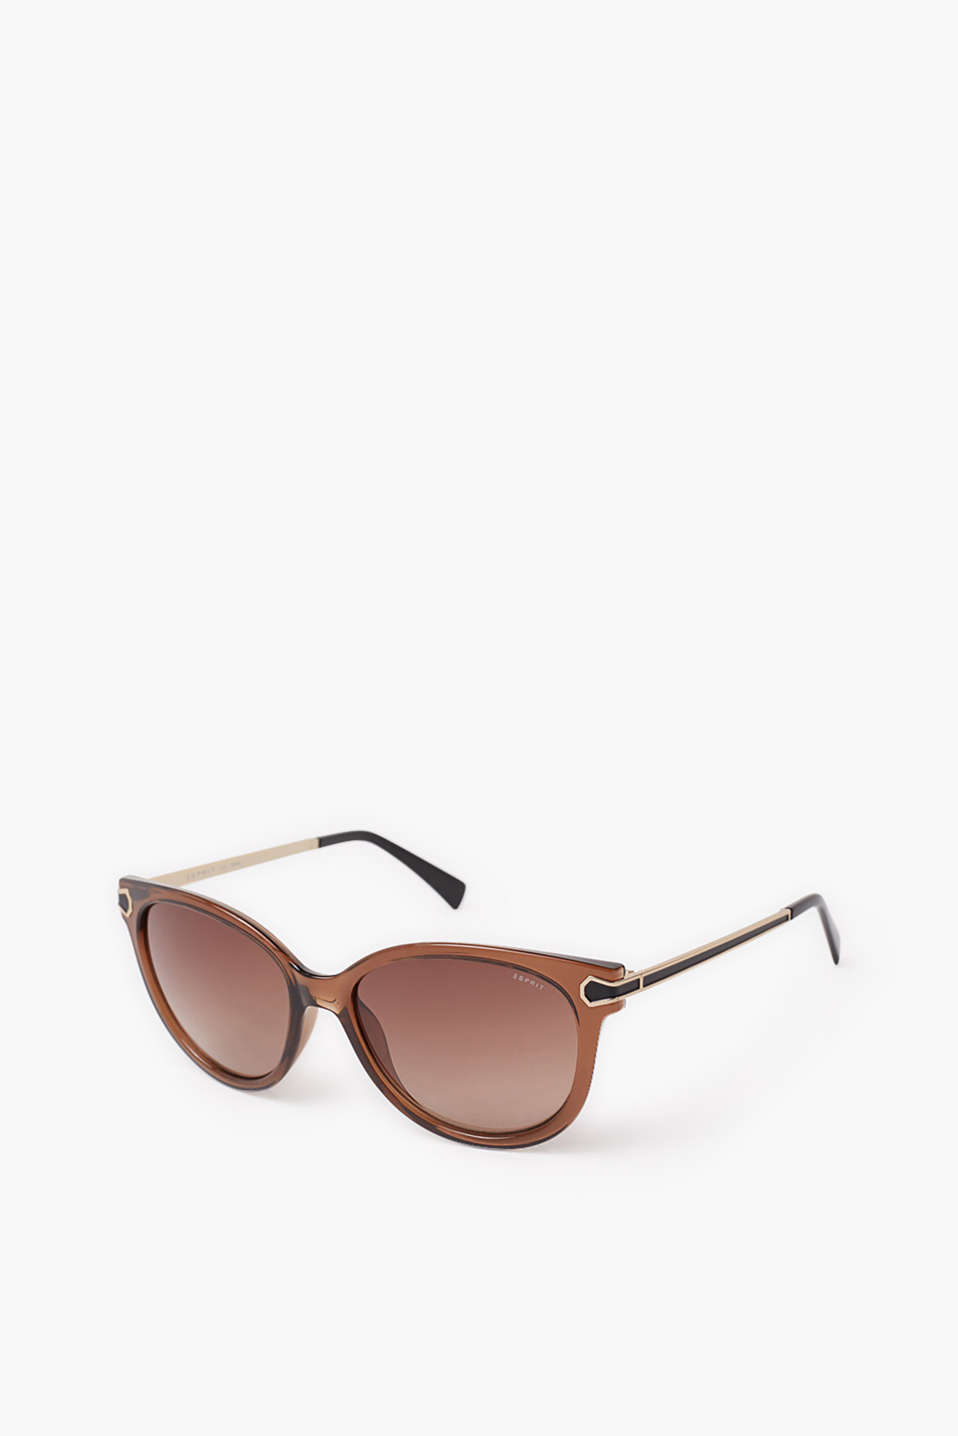 Sunglasses in a subtle cat-eye shape, with metal temples in a modern shape